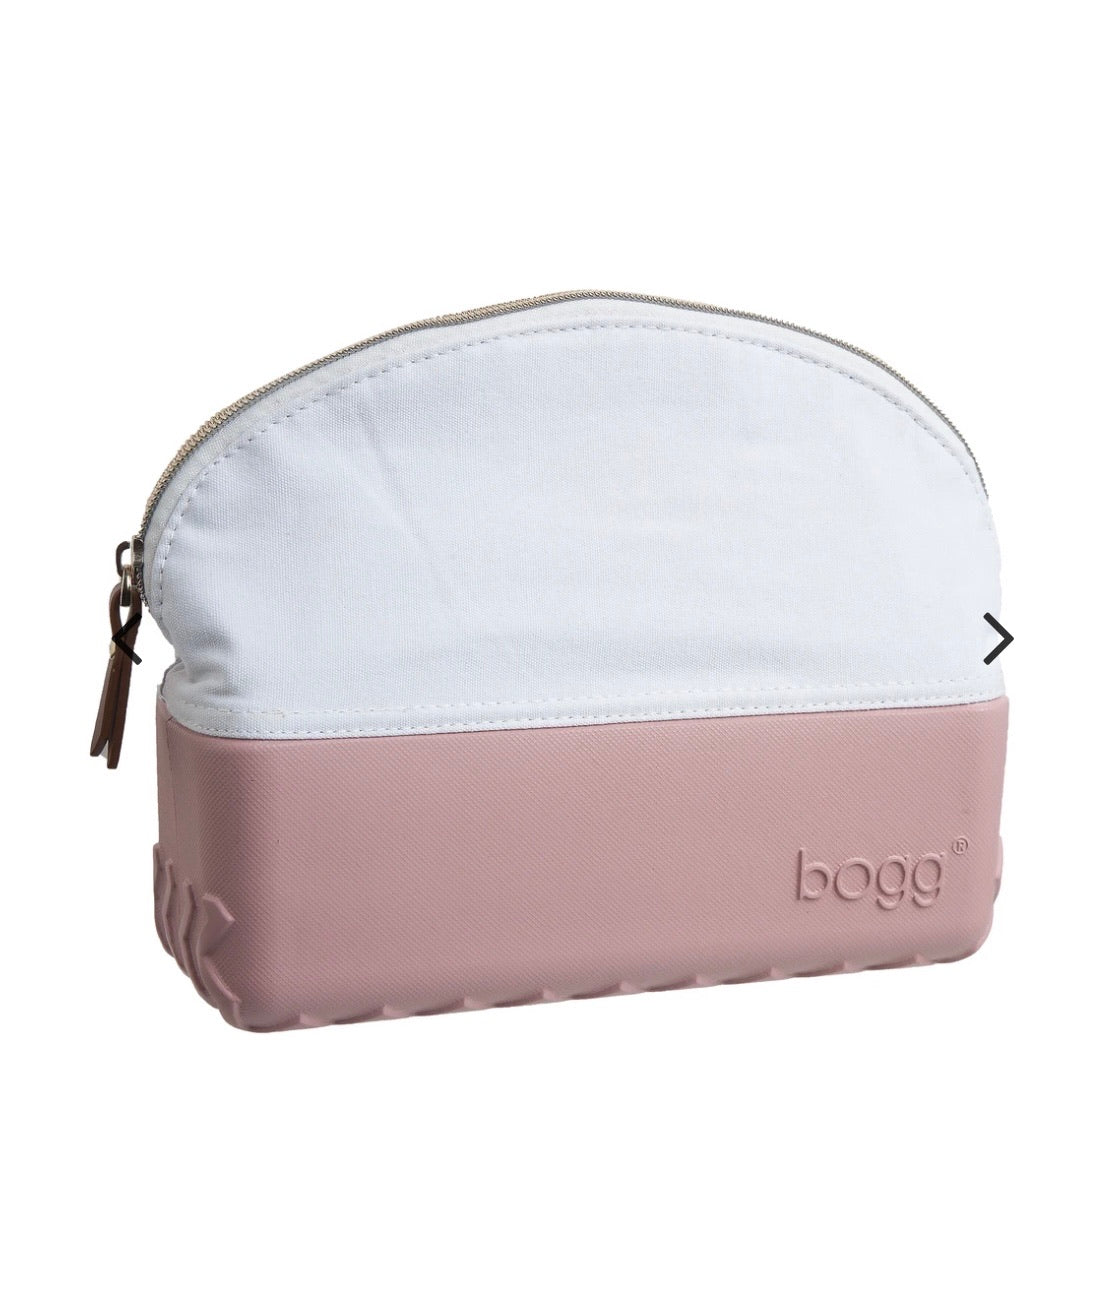 Bogg bag blush cosmetic bag